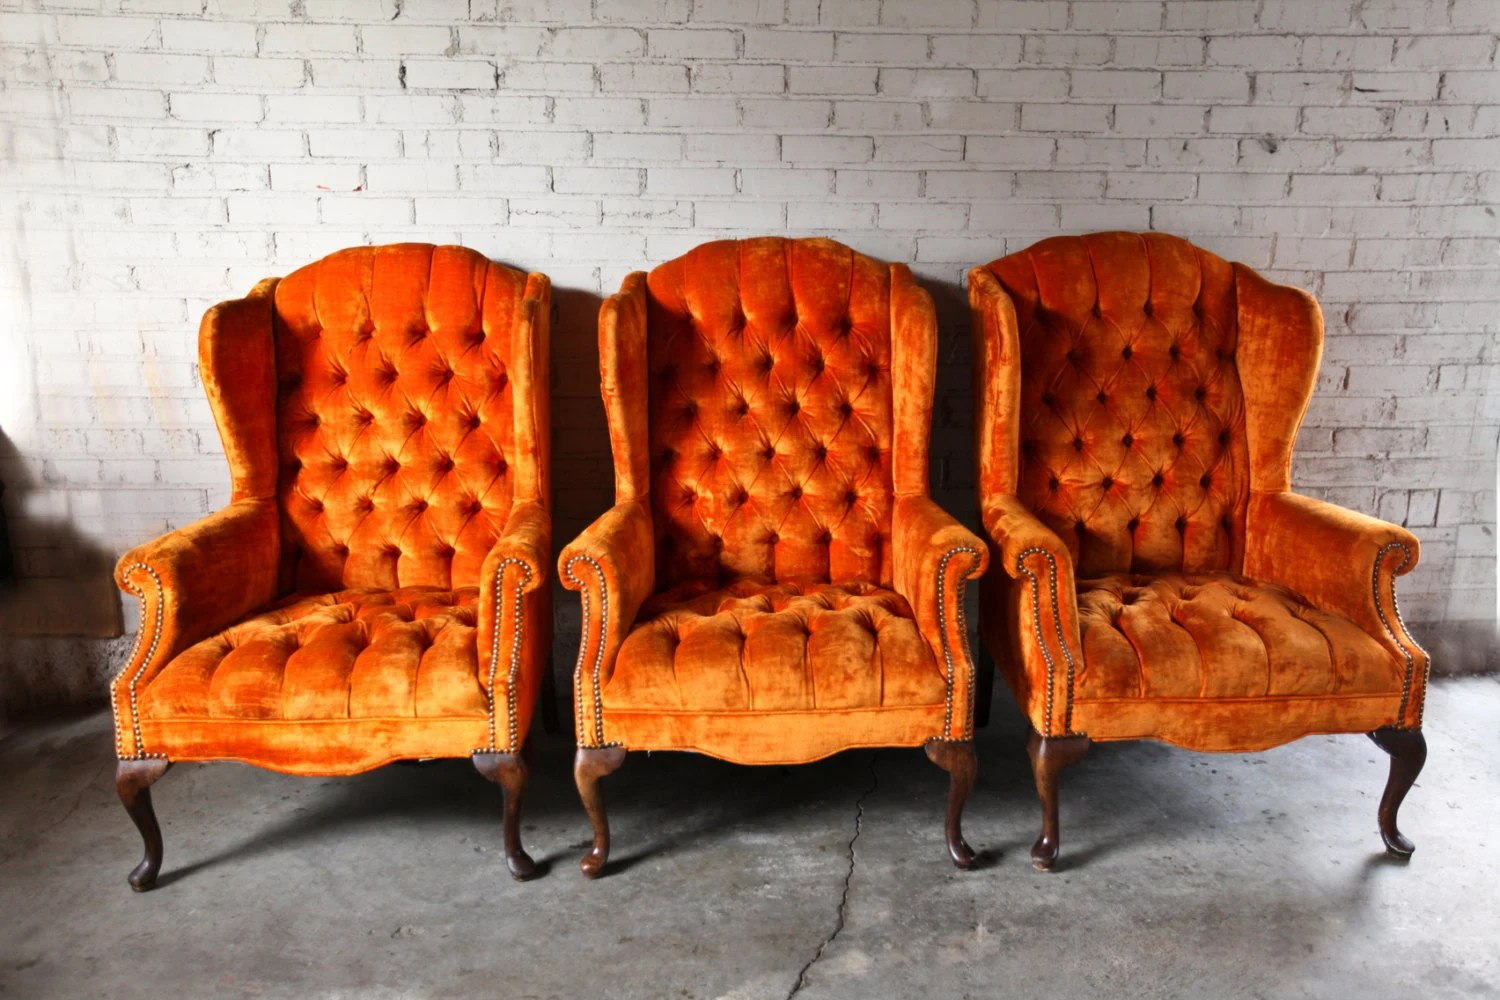 Orange Wingback Chair 3 Vintage Orange Velvet Tufted Wingback Chairs